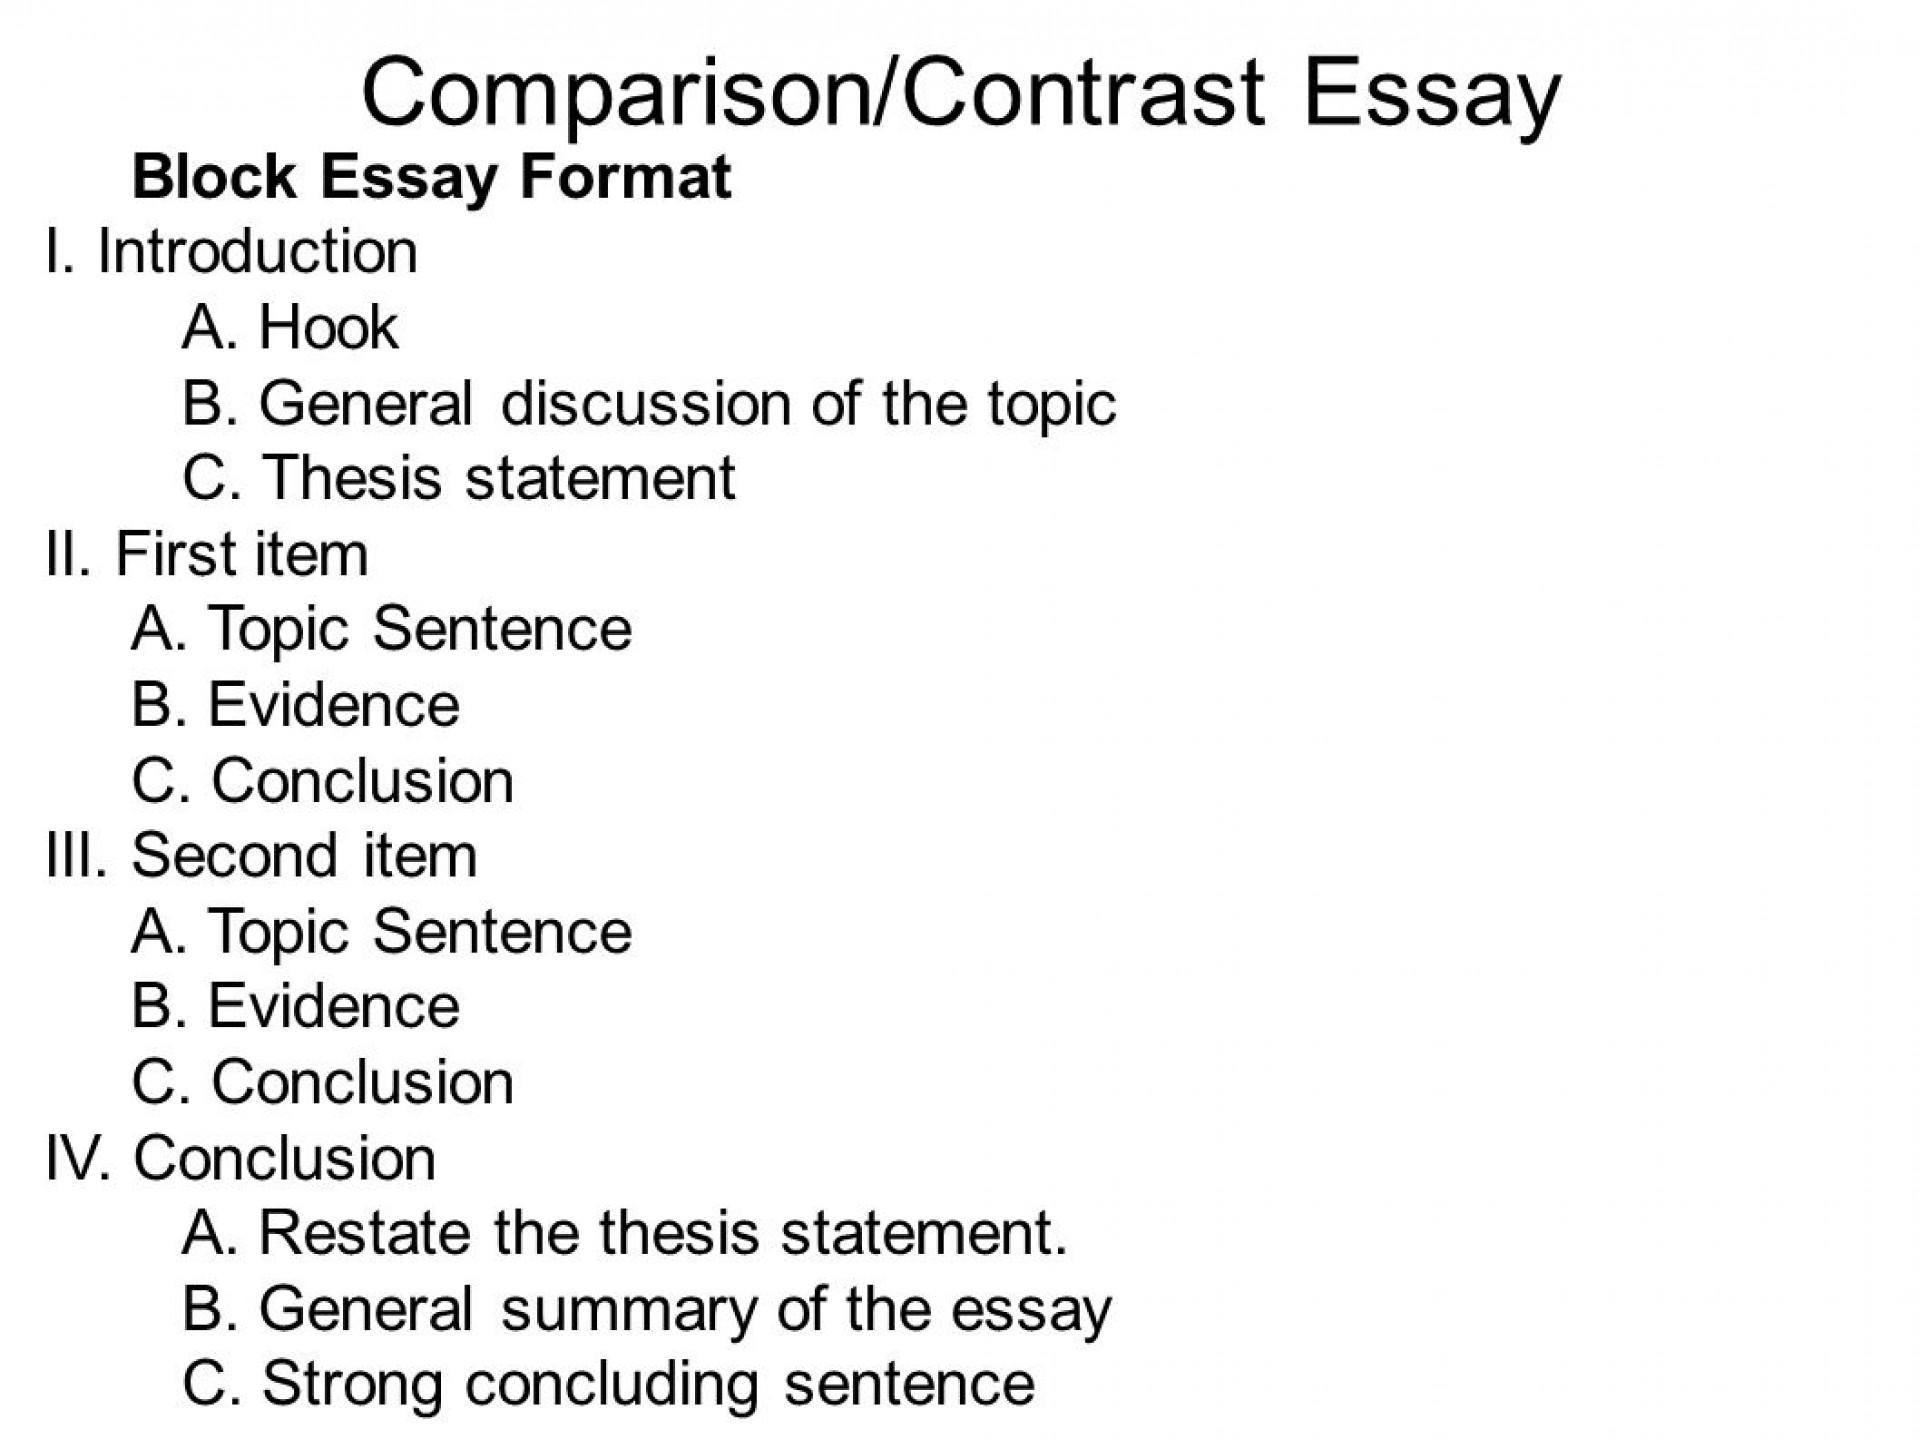 009 Writing Comparison And Contrast Essay Img Onvgs How To Write Incredible Thesis Statement Compare Topics Toefl High School 1920